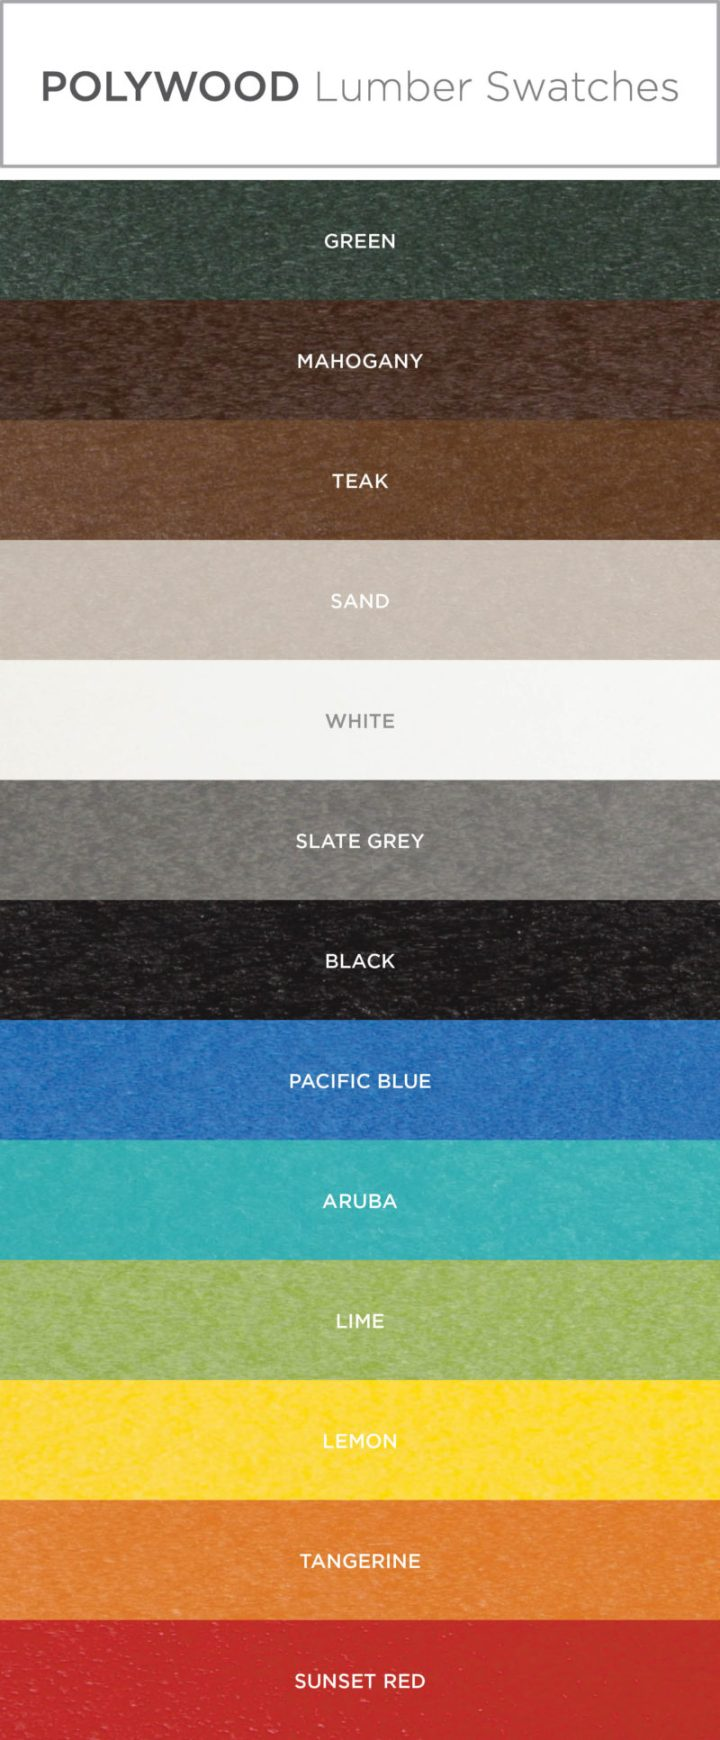 adirondack chair color swatches